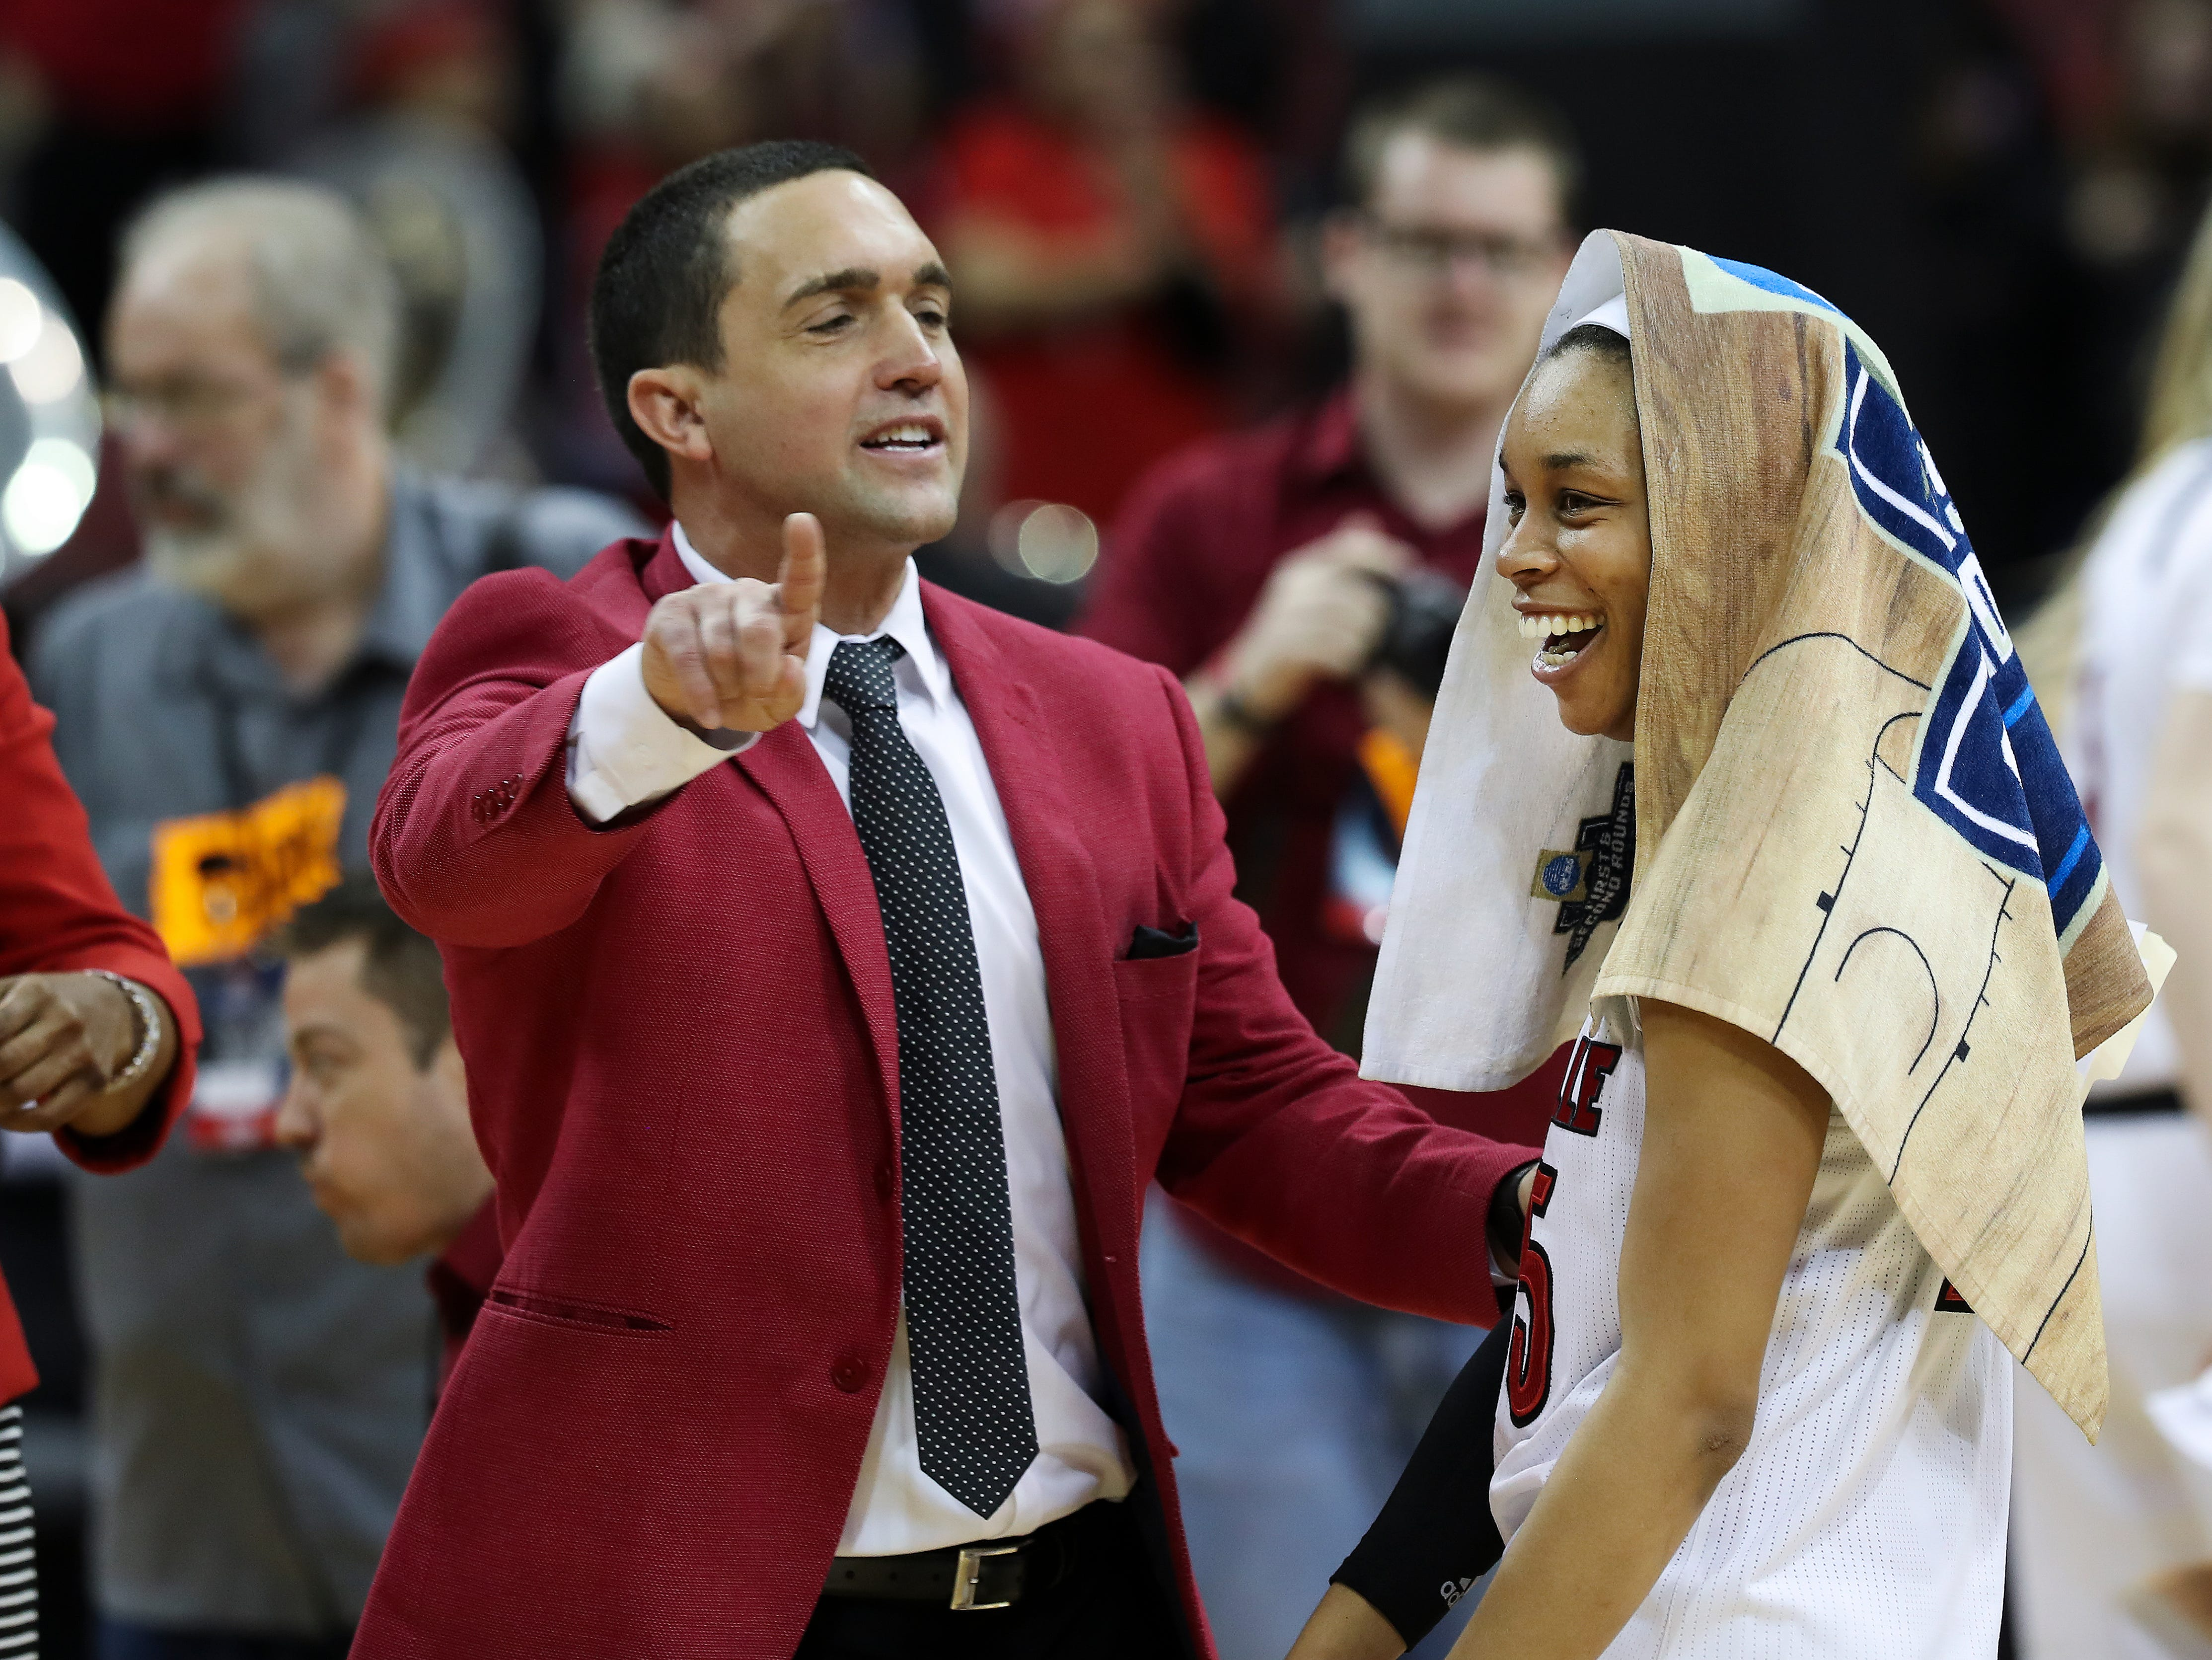 U of L Associate Coach Sam Purcell made sure Asia Durr (25) took a victory lap to the fans after their 71-50 defeat of Michigan in the second round of their NCAA Tournament game at the Yum Center.  They advance to the Sweet 16 in the Albany regional.Mar. 24, 2019